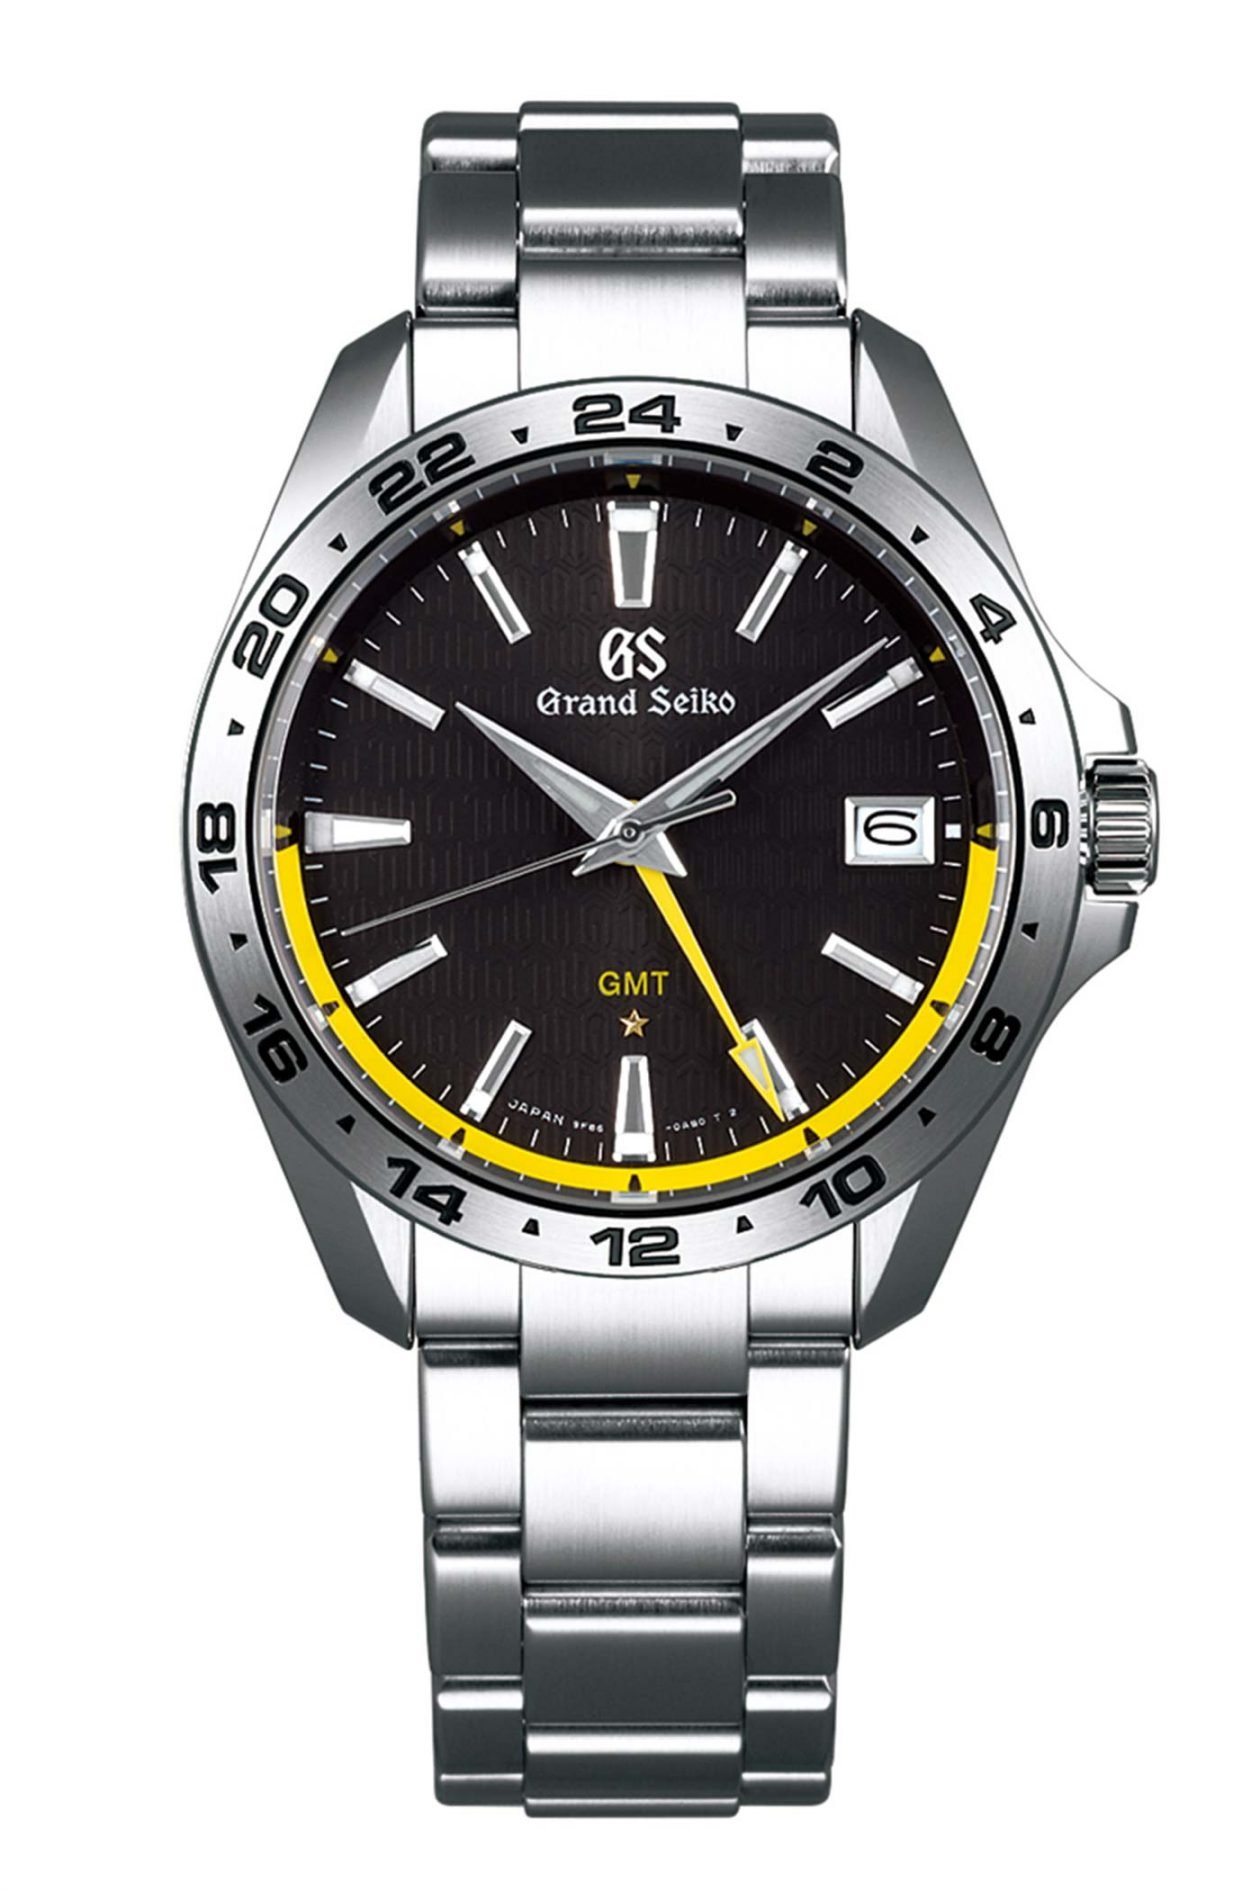 Grand Seiko 9F GMT Quartz